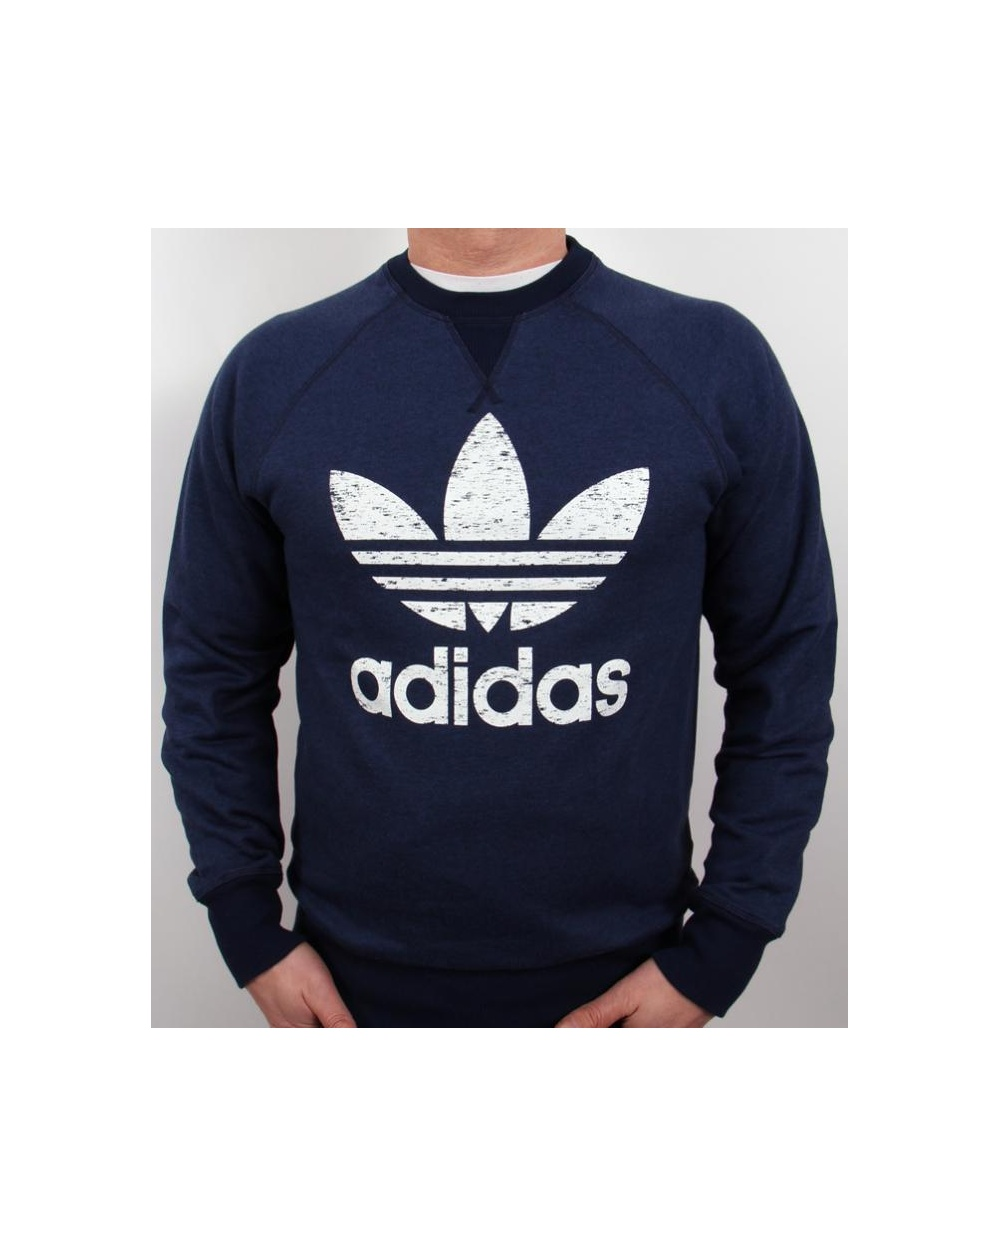 adidas originals sports essential crew neck sweatshirt. Black Bedroom Furniture Sets. Home Design Ideas